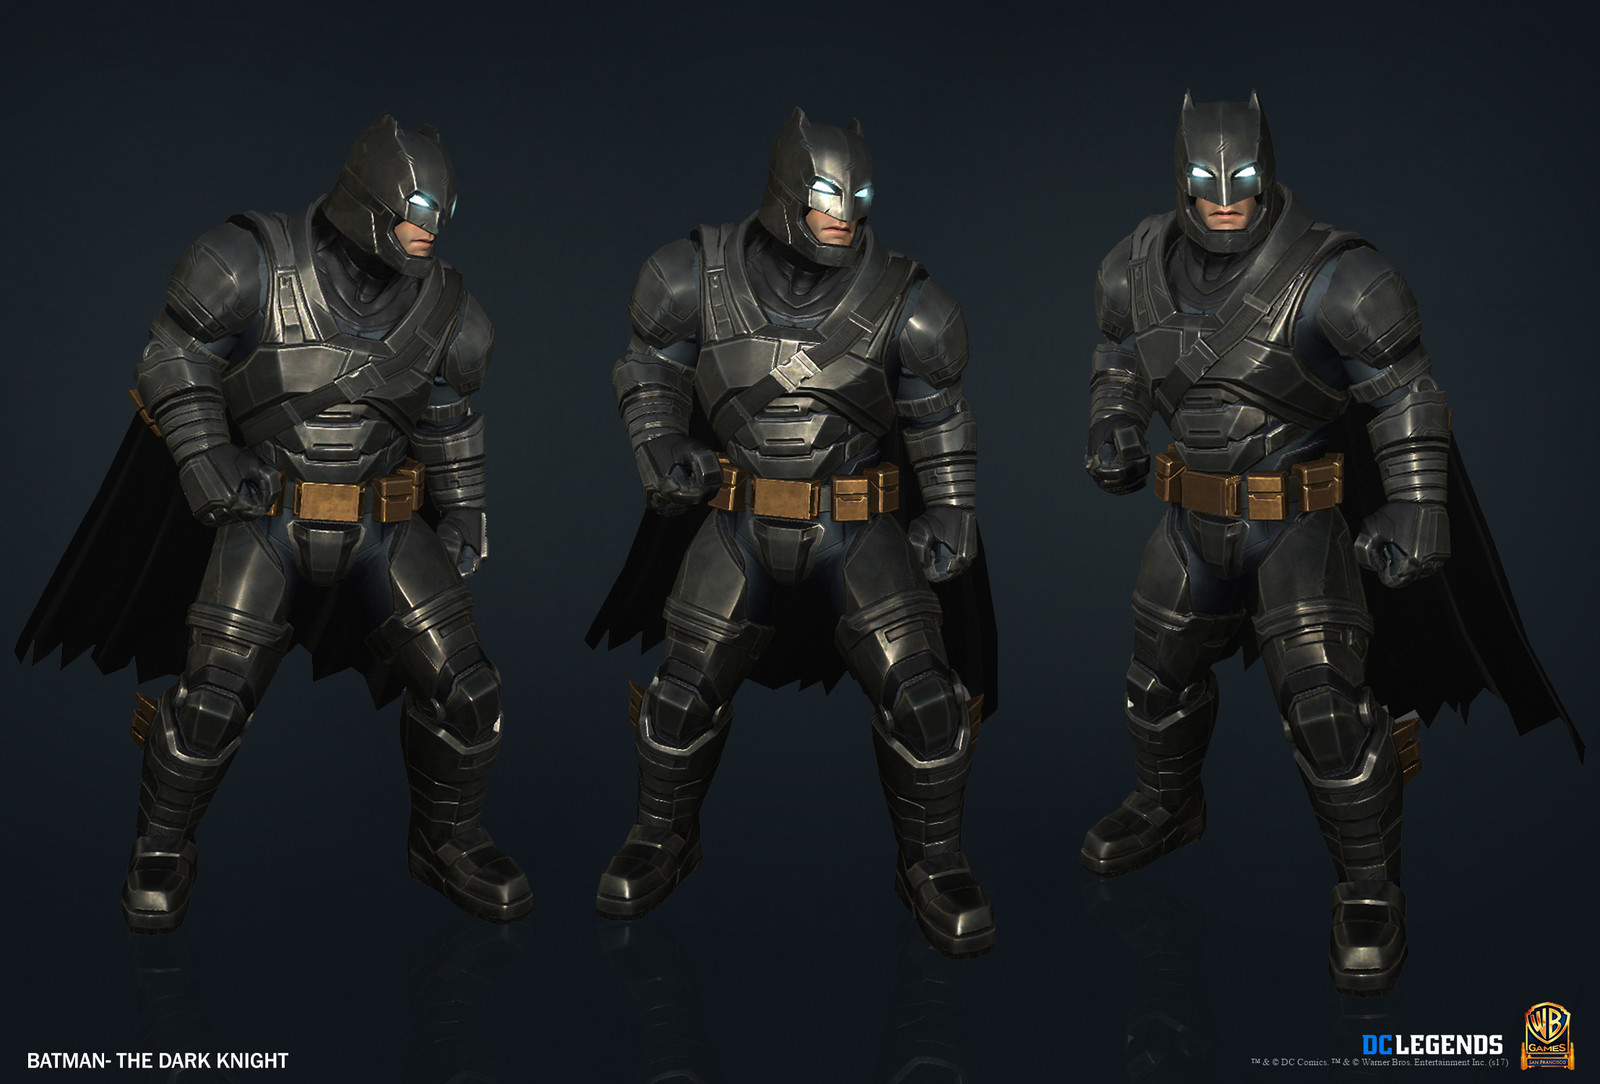 Batman The Dark Knight Heroic High Poly, Low Poly and Textures/Material work done by me.